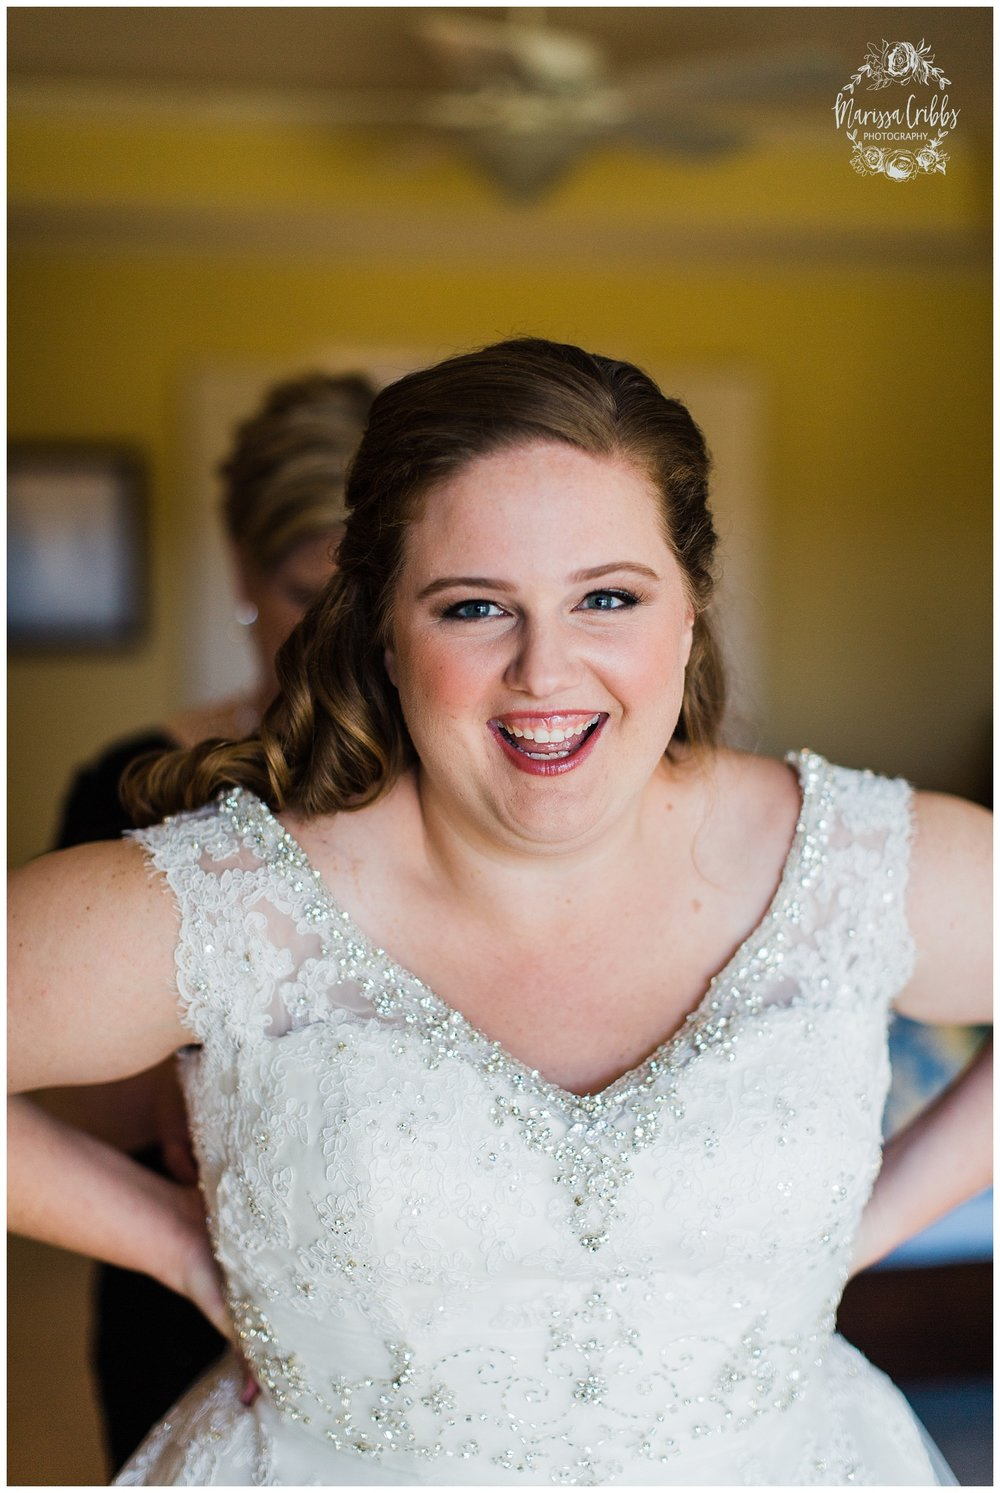 KELLY WEDDING | VENUE AT WILLOW CREEK | MARISSA CRIBBS PHOTOGRAPHY_3668.jpg